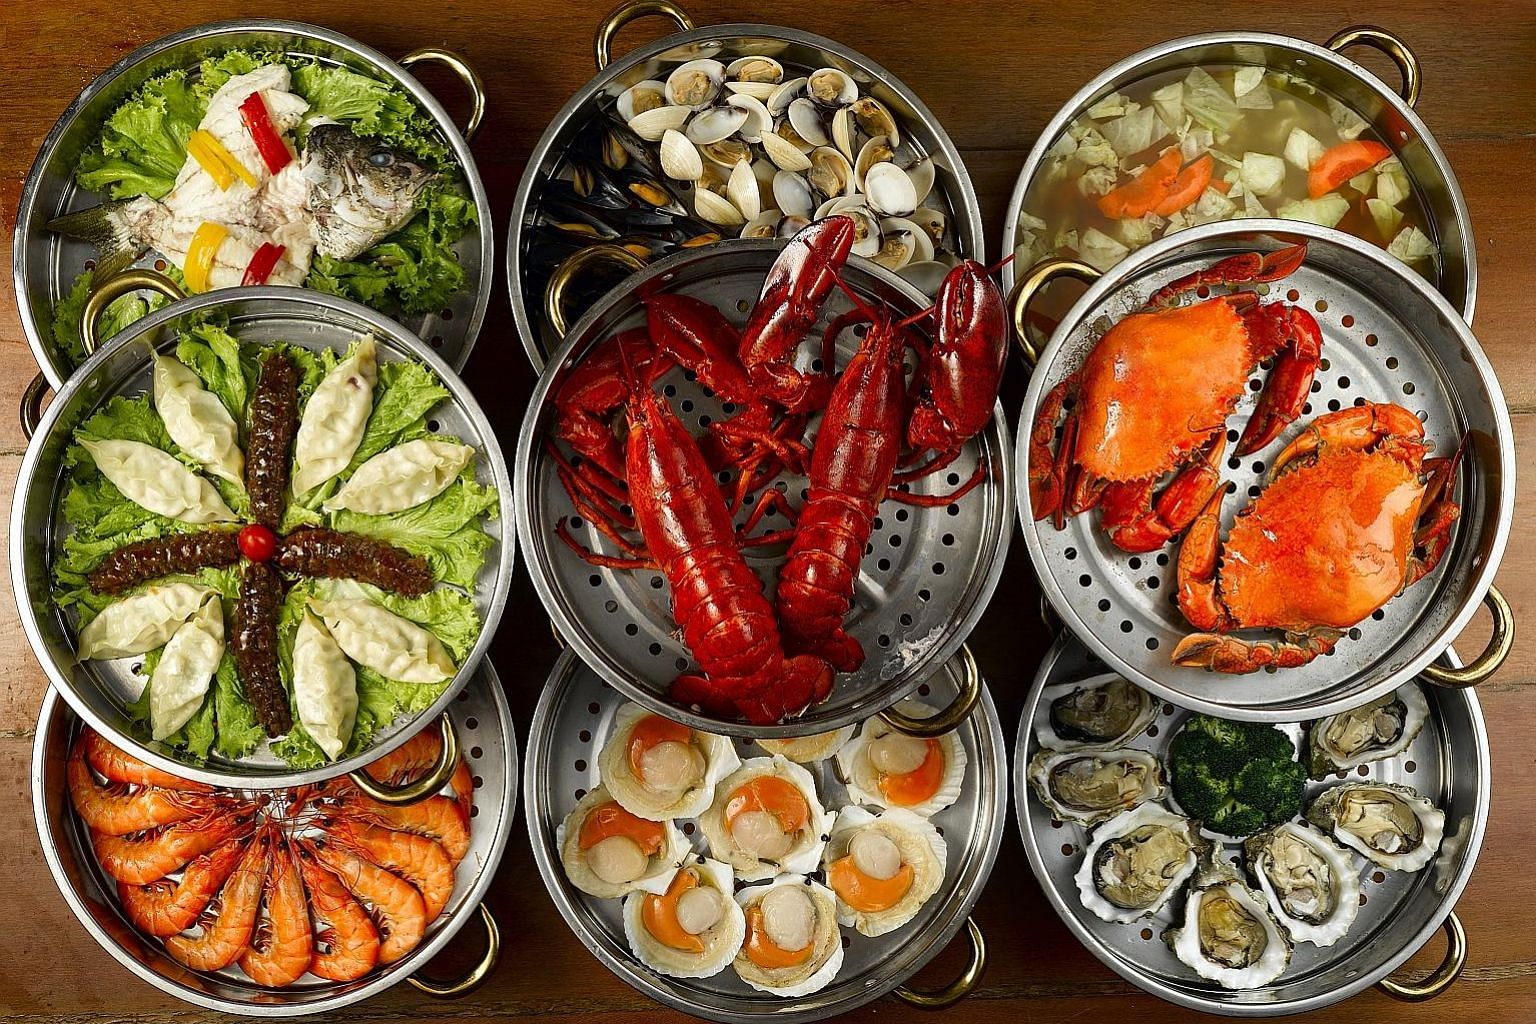 Seafood comes in tiers of three to nine steamers (left), with each tier holding different items (above) and a pot of broth at the bottom.